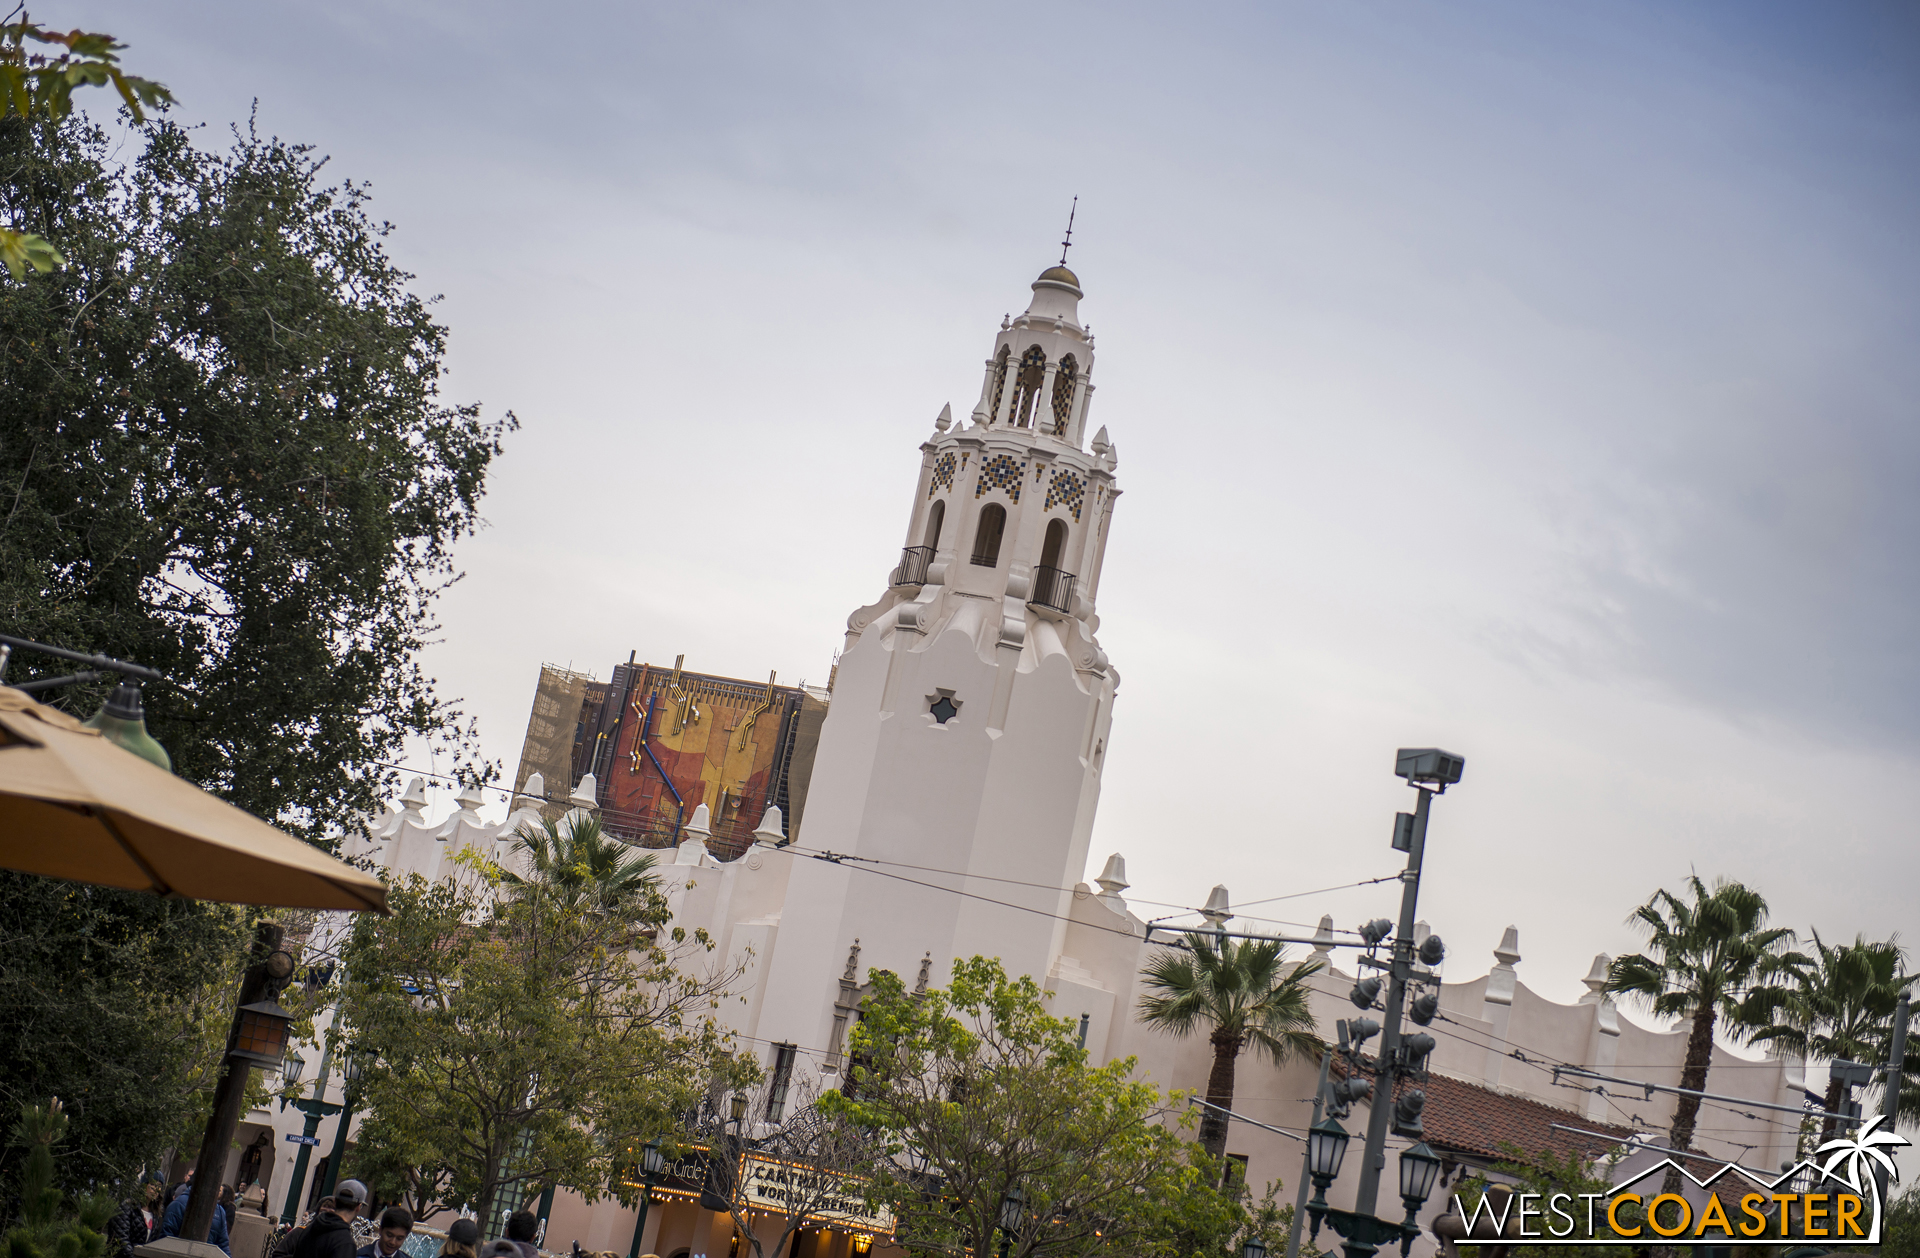 And here it is looming behind Carthay Circle Restaurant, as seen from Grizzly Peak Airfield.